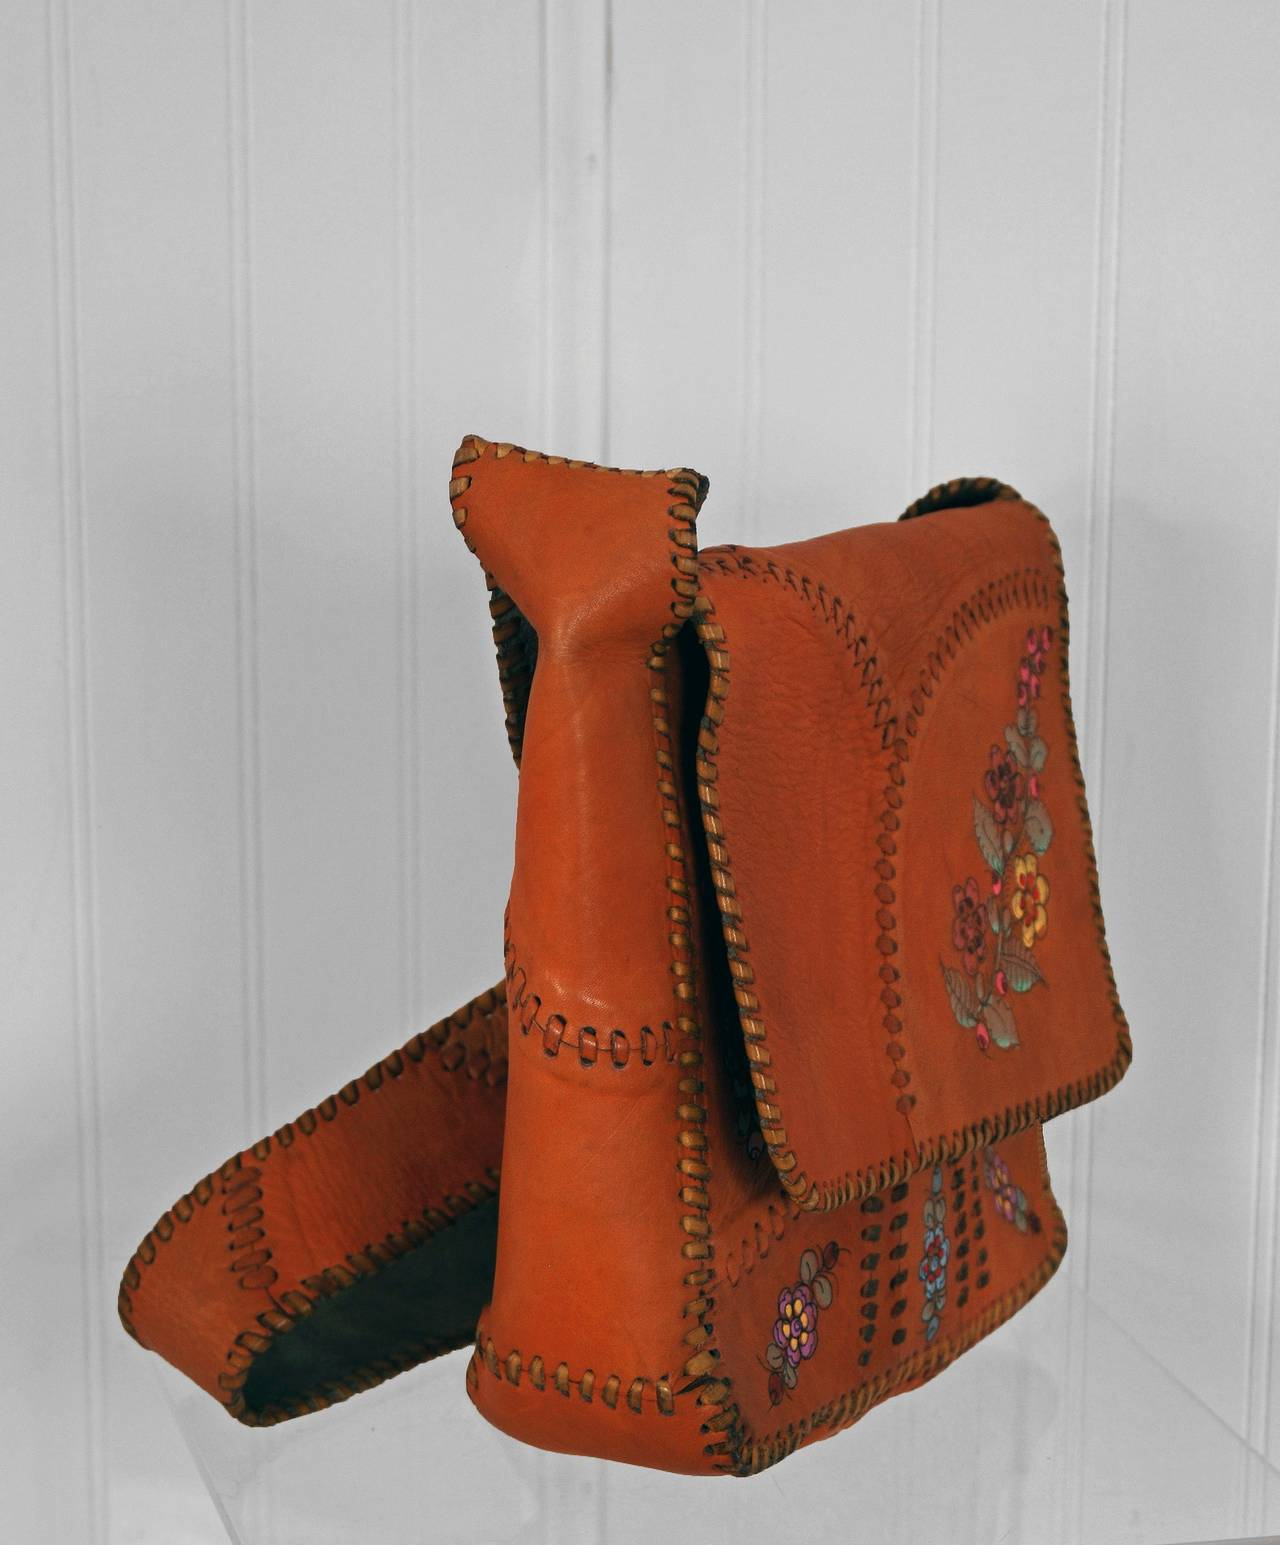 1970's Char Handpainted Whipstitched Leather Bohemian Hippie Messanger Bag Purse 4